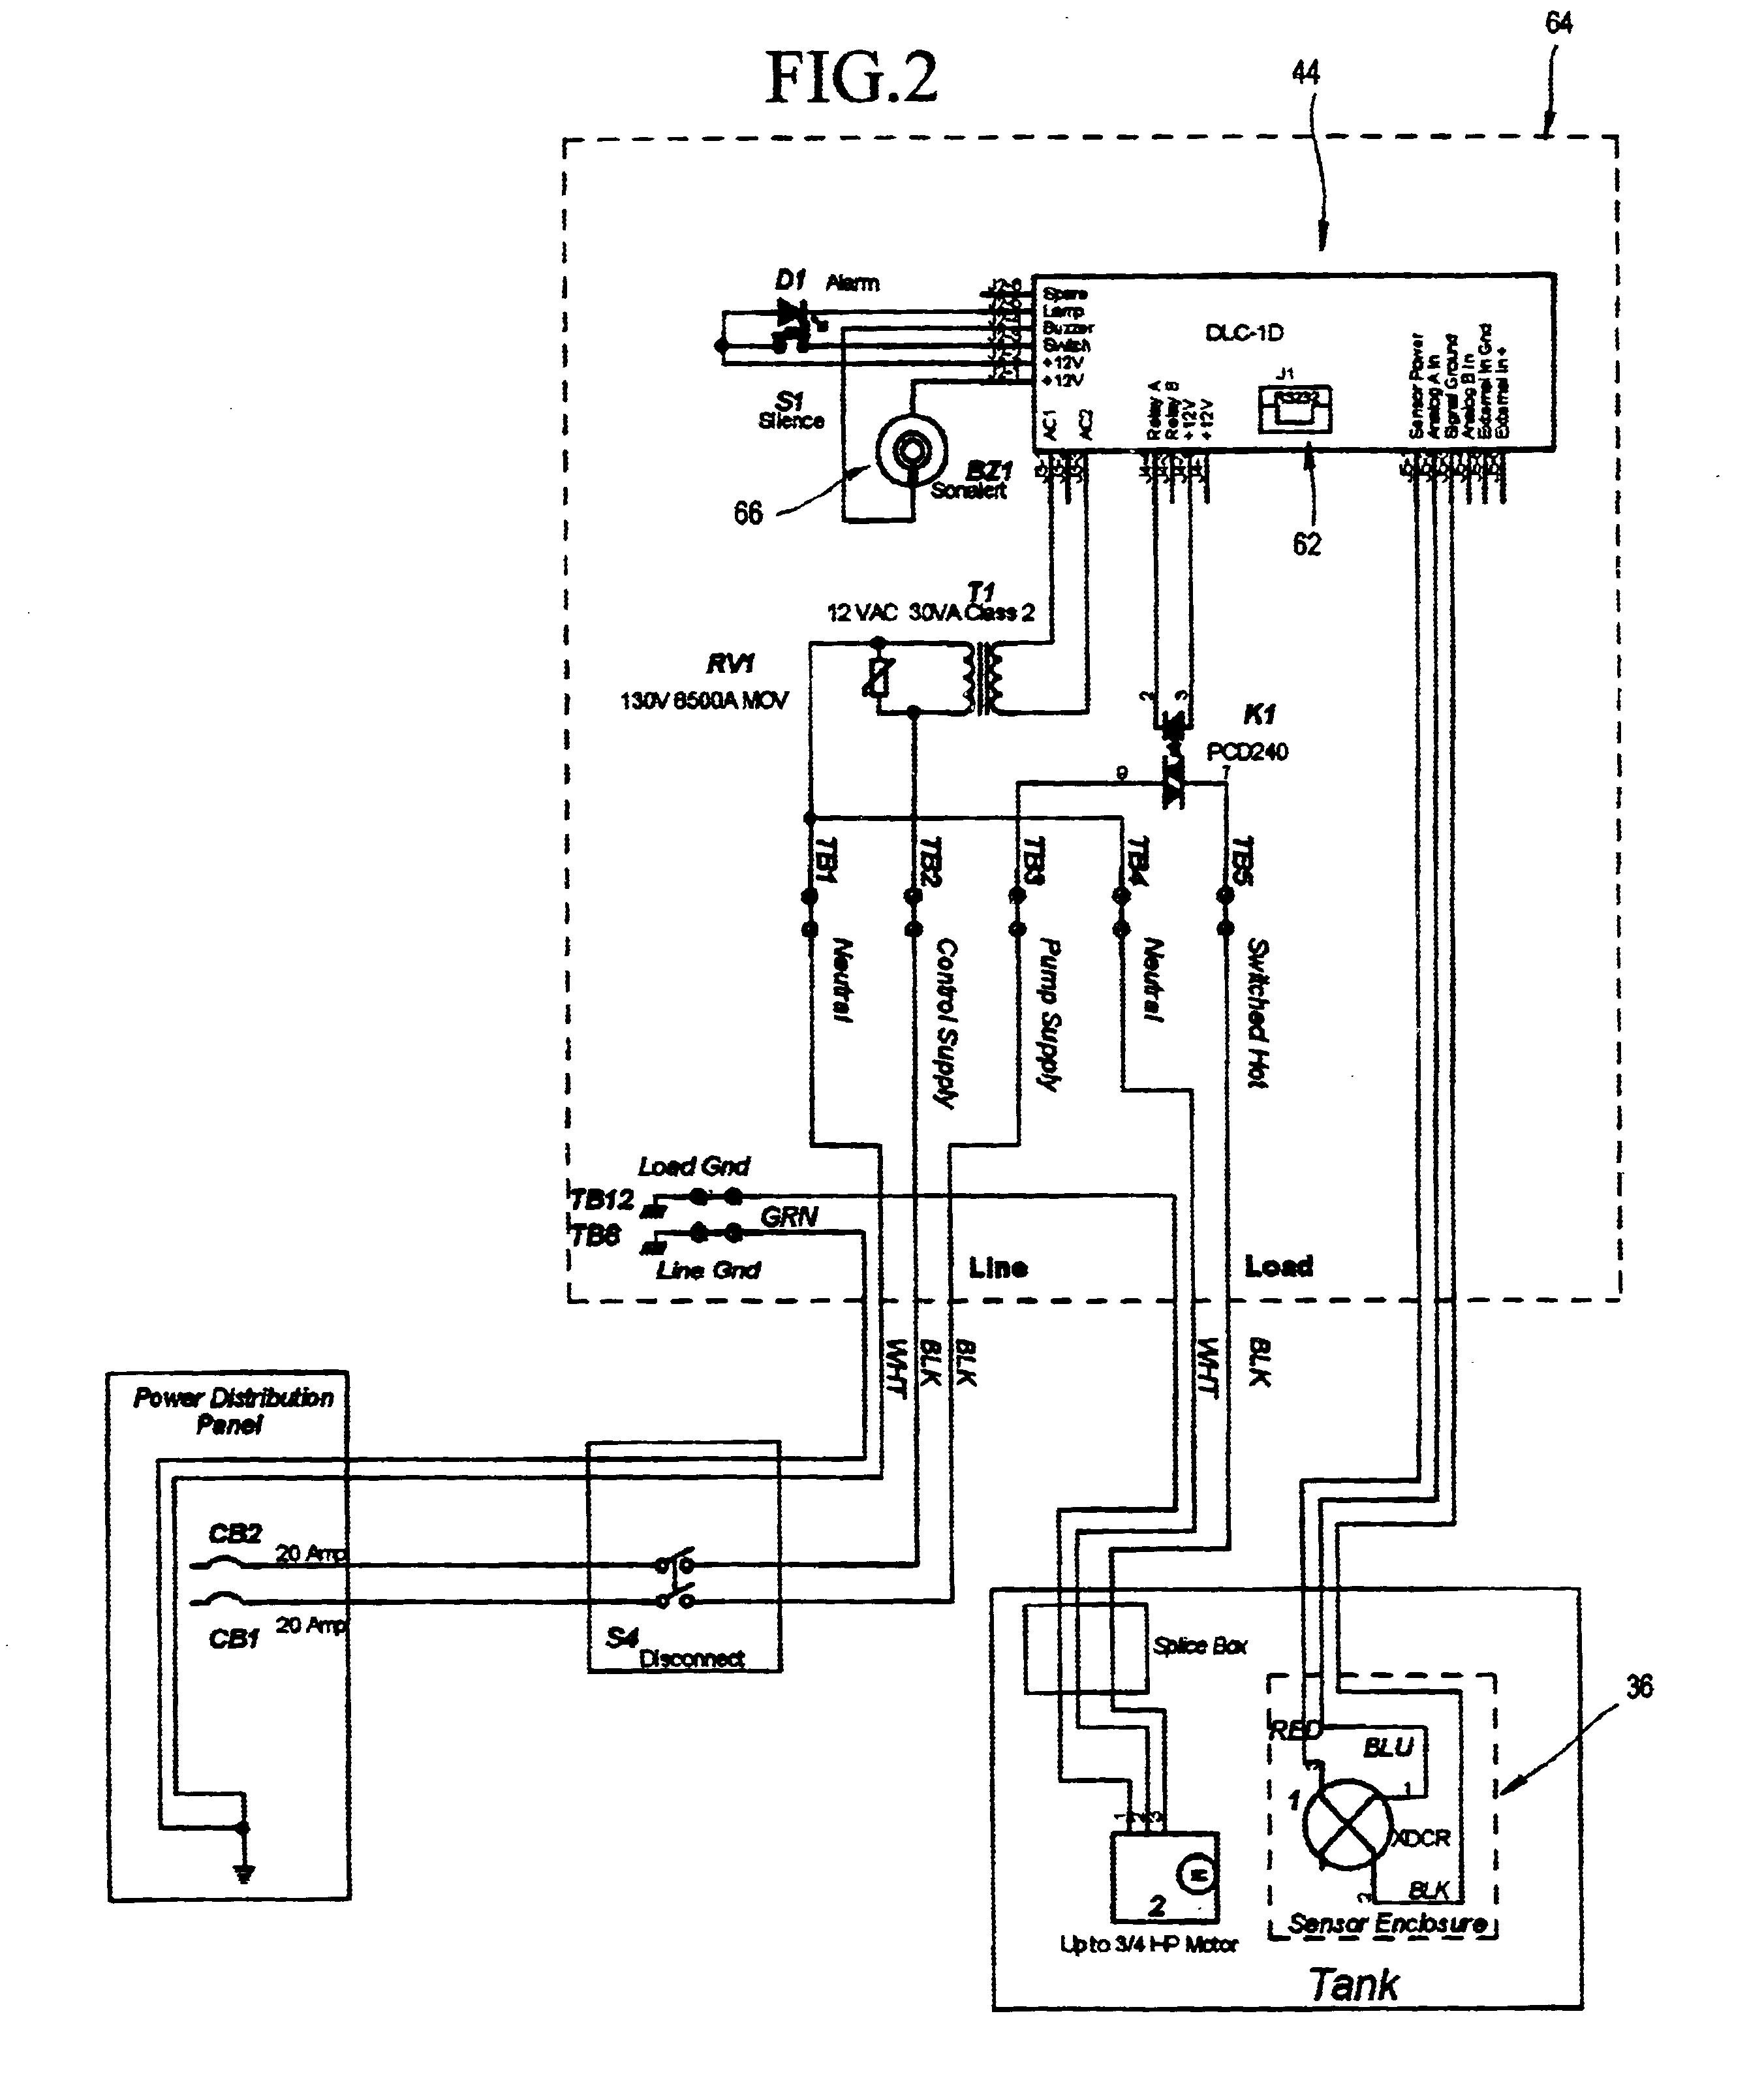 Septic Pump Wiring Diagram : Septic tank wiring schematic clearstream